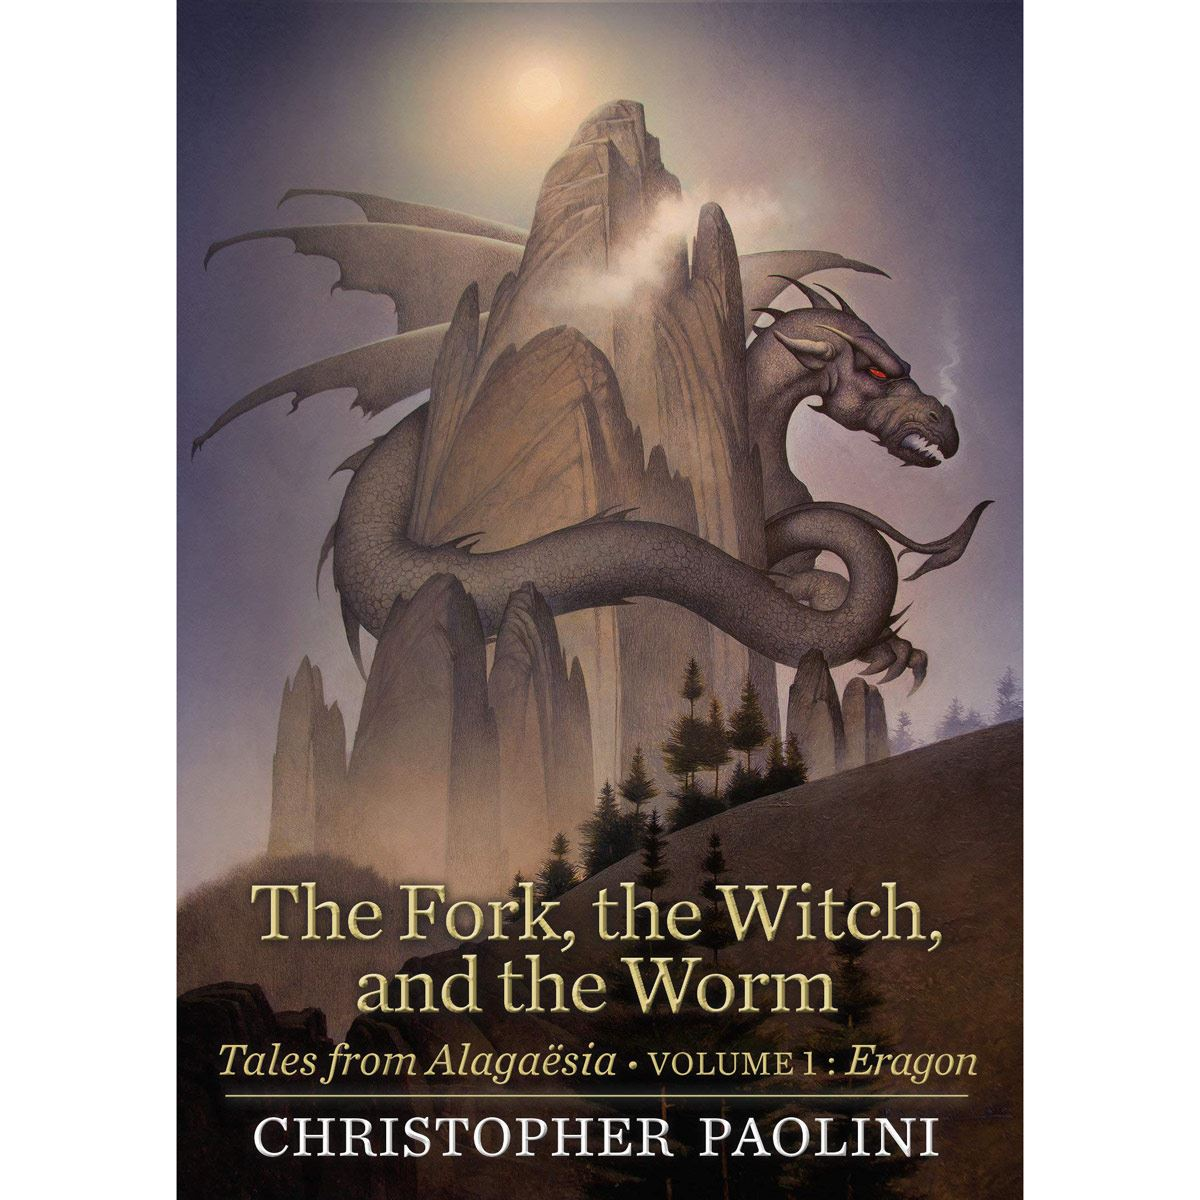 The Fork, the witch and the worm: Tales from Alagaësia